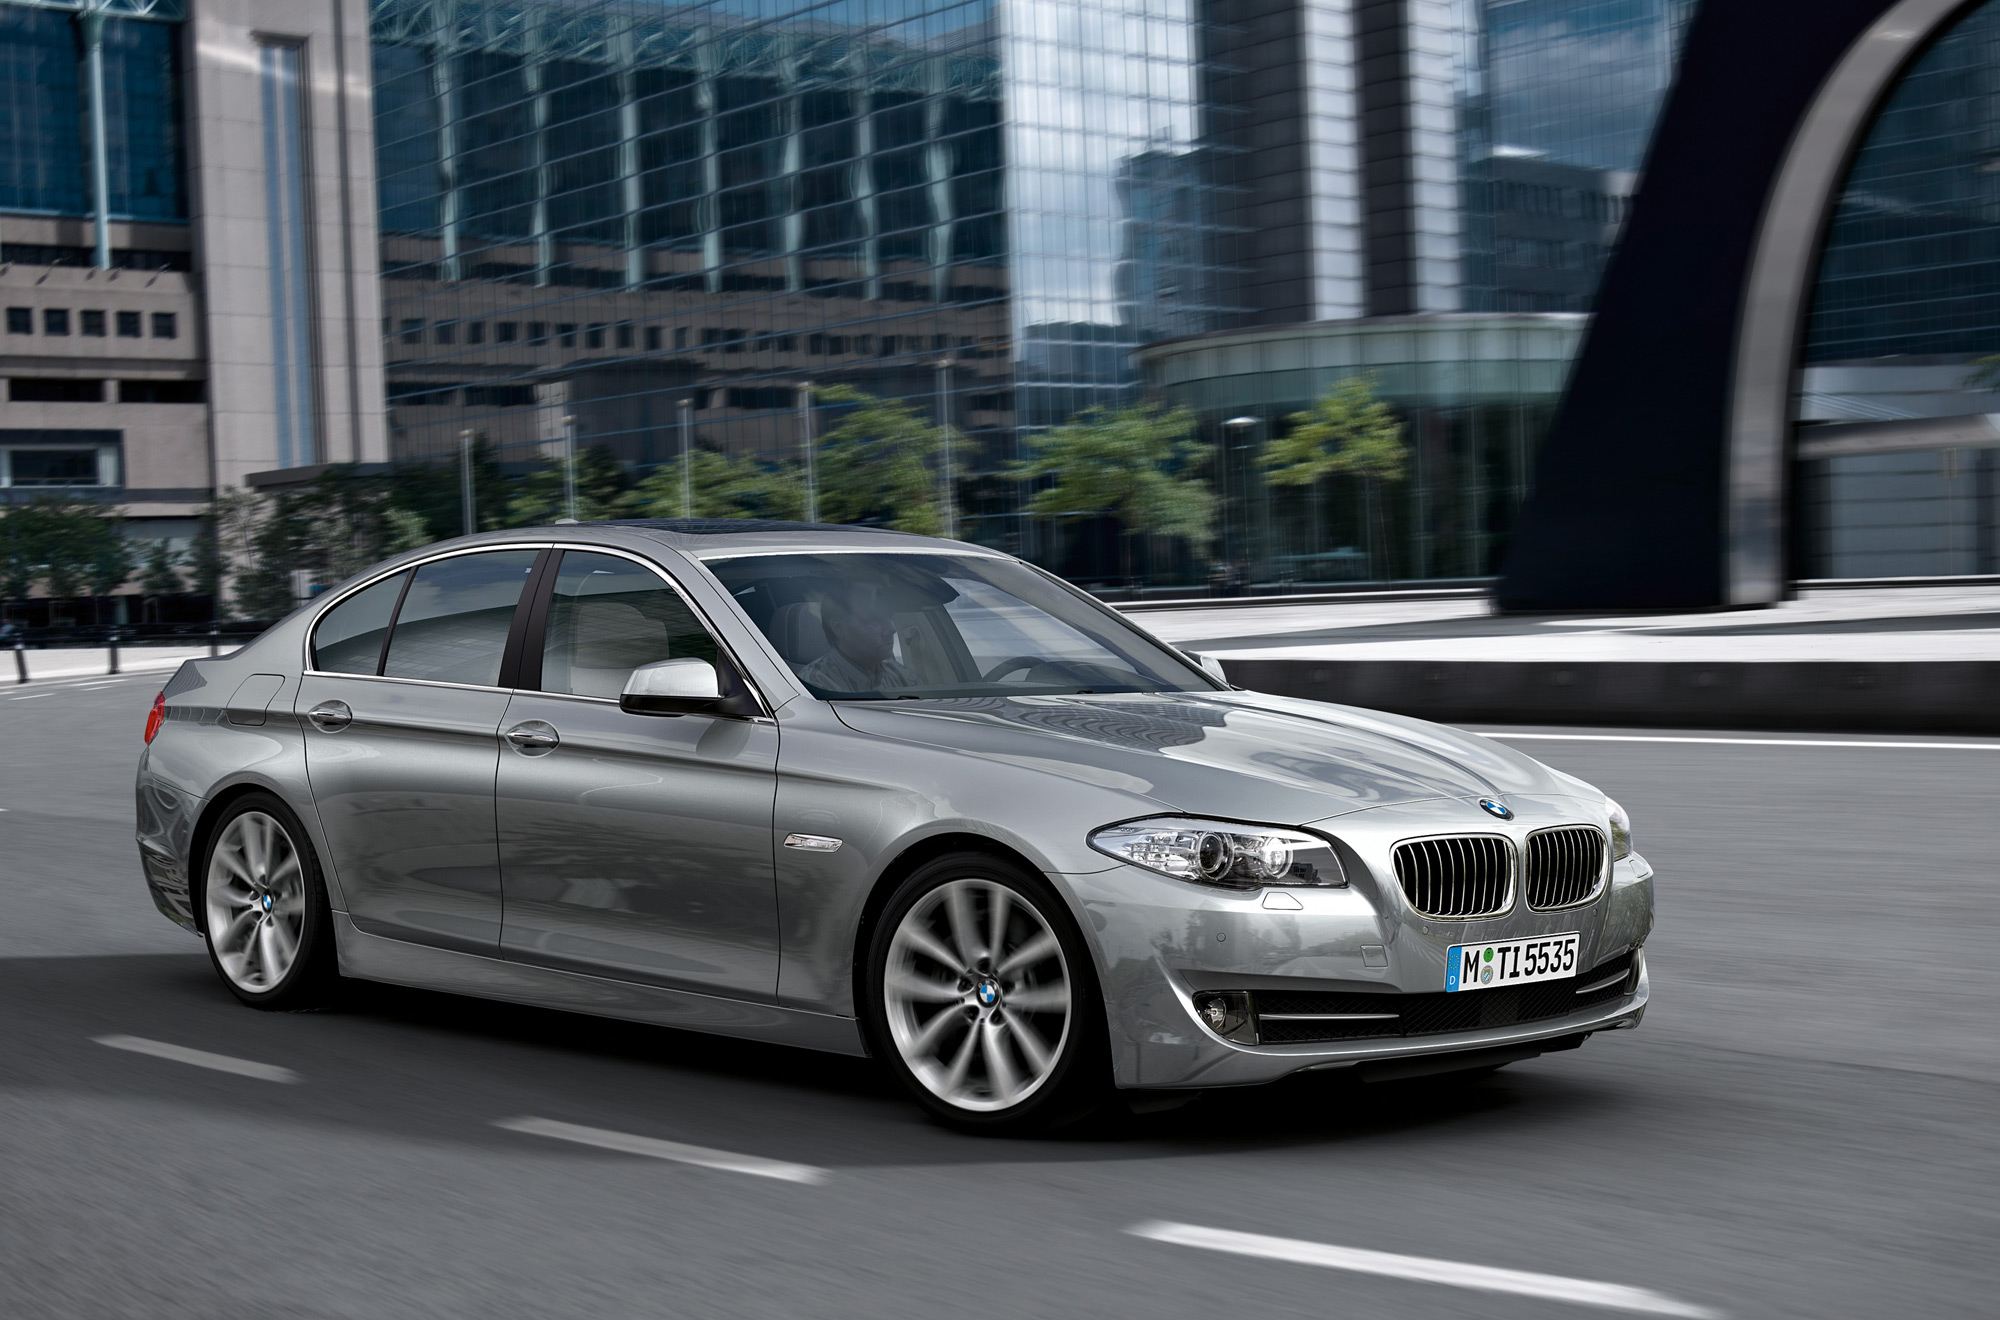 BMW Xi Review Amazing Pictures And Images Look At The Car - 2010 bmw 528xi